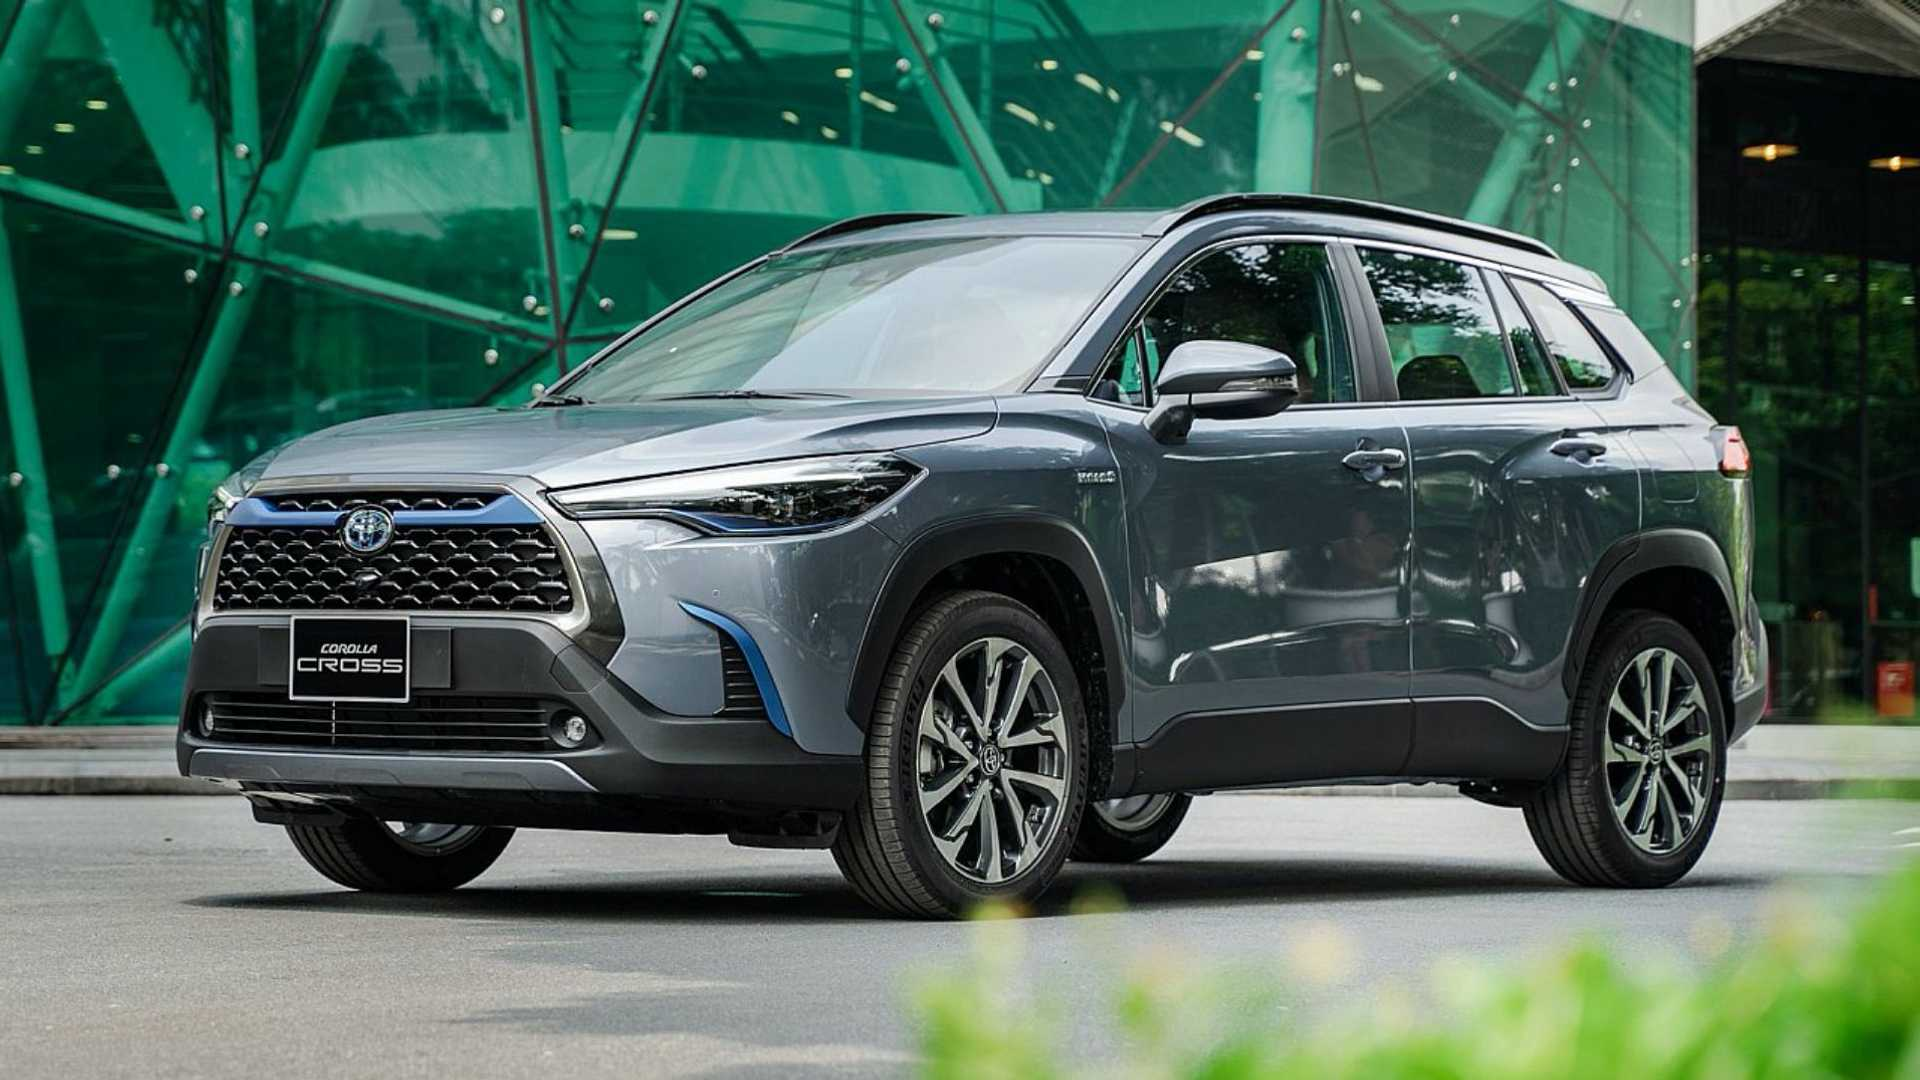 When Toyota unveiled its new Corolla Cross SUV in early July, it initially showed us the Thailand version of it. Today, Vietnam spec joins the range with some minor design revisions.